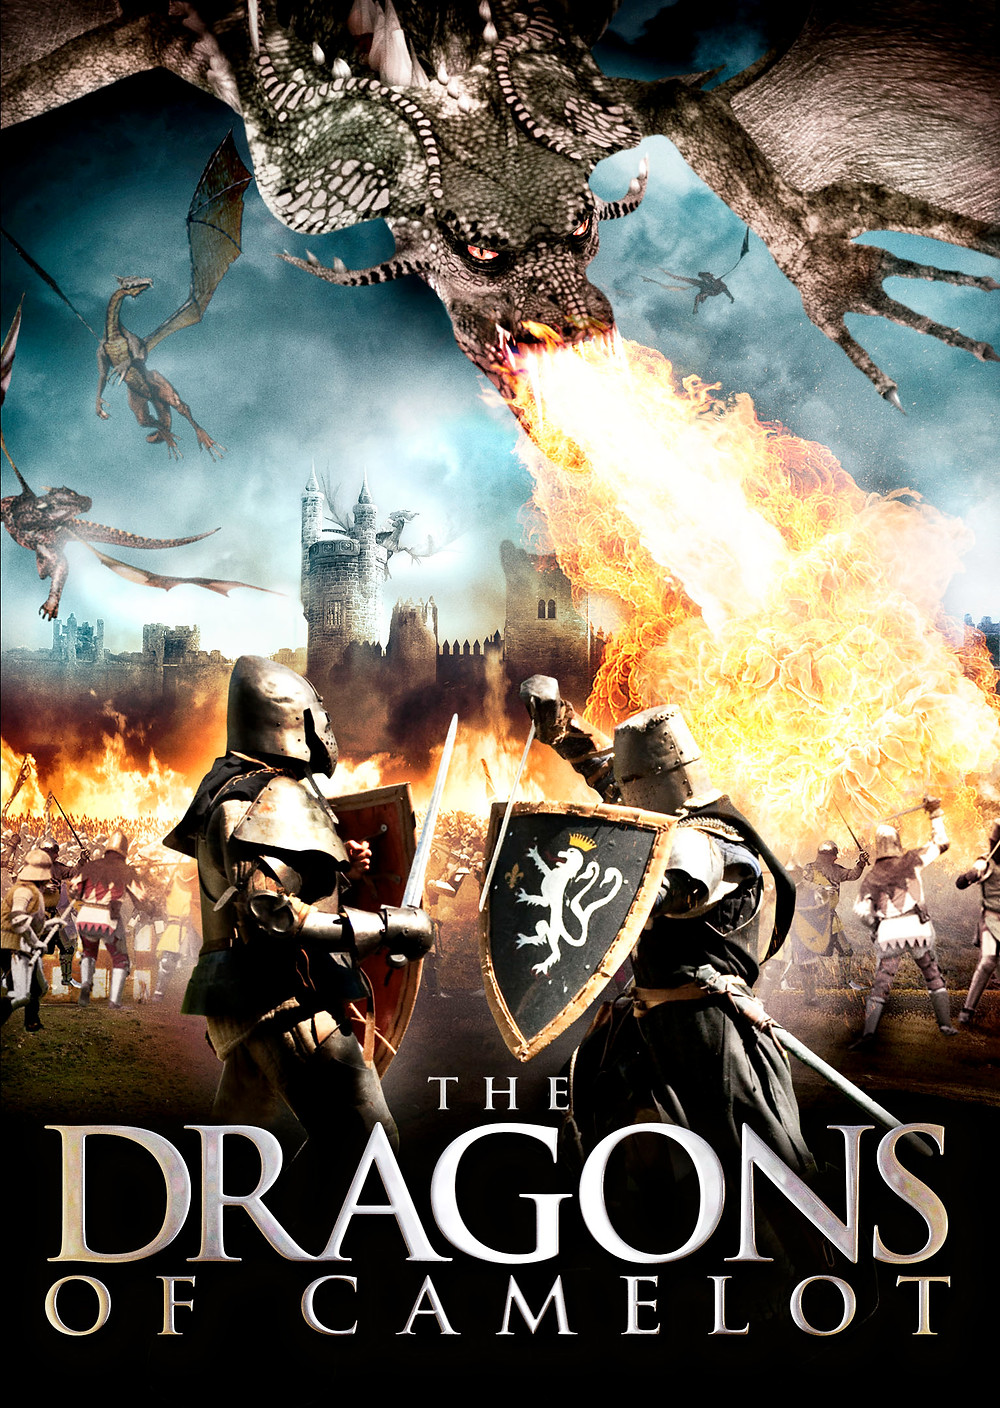 DRAGONS_OF_CAMELOT_DVD_SLV_V7.jpg